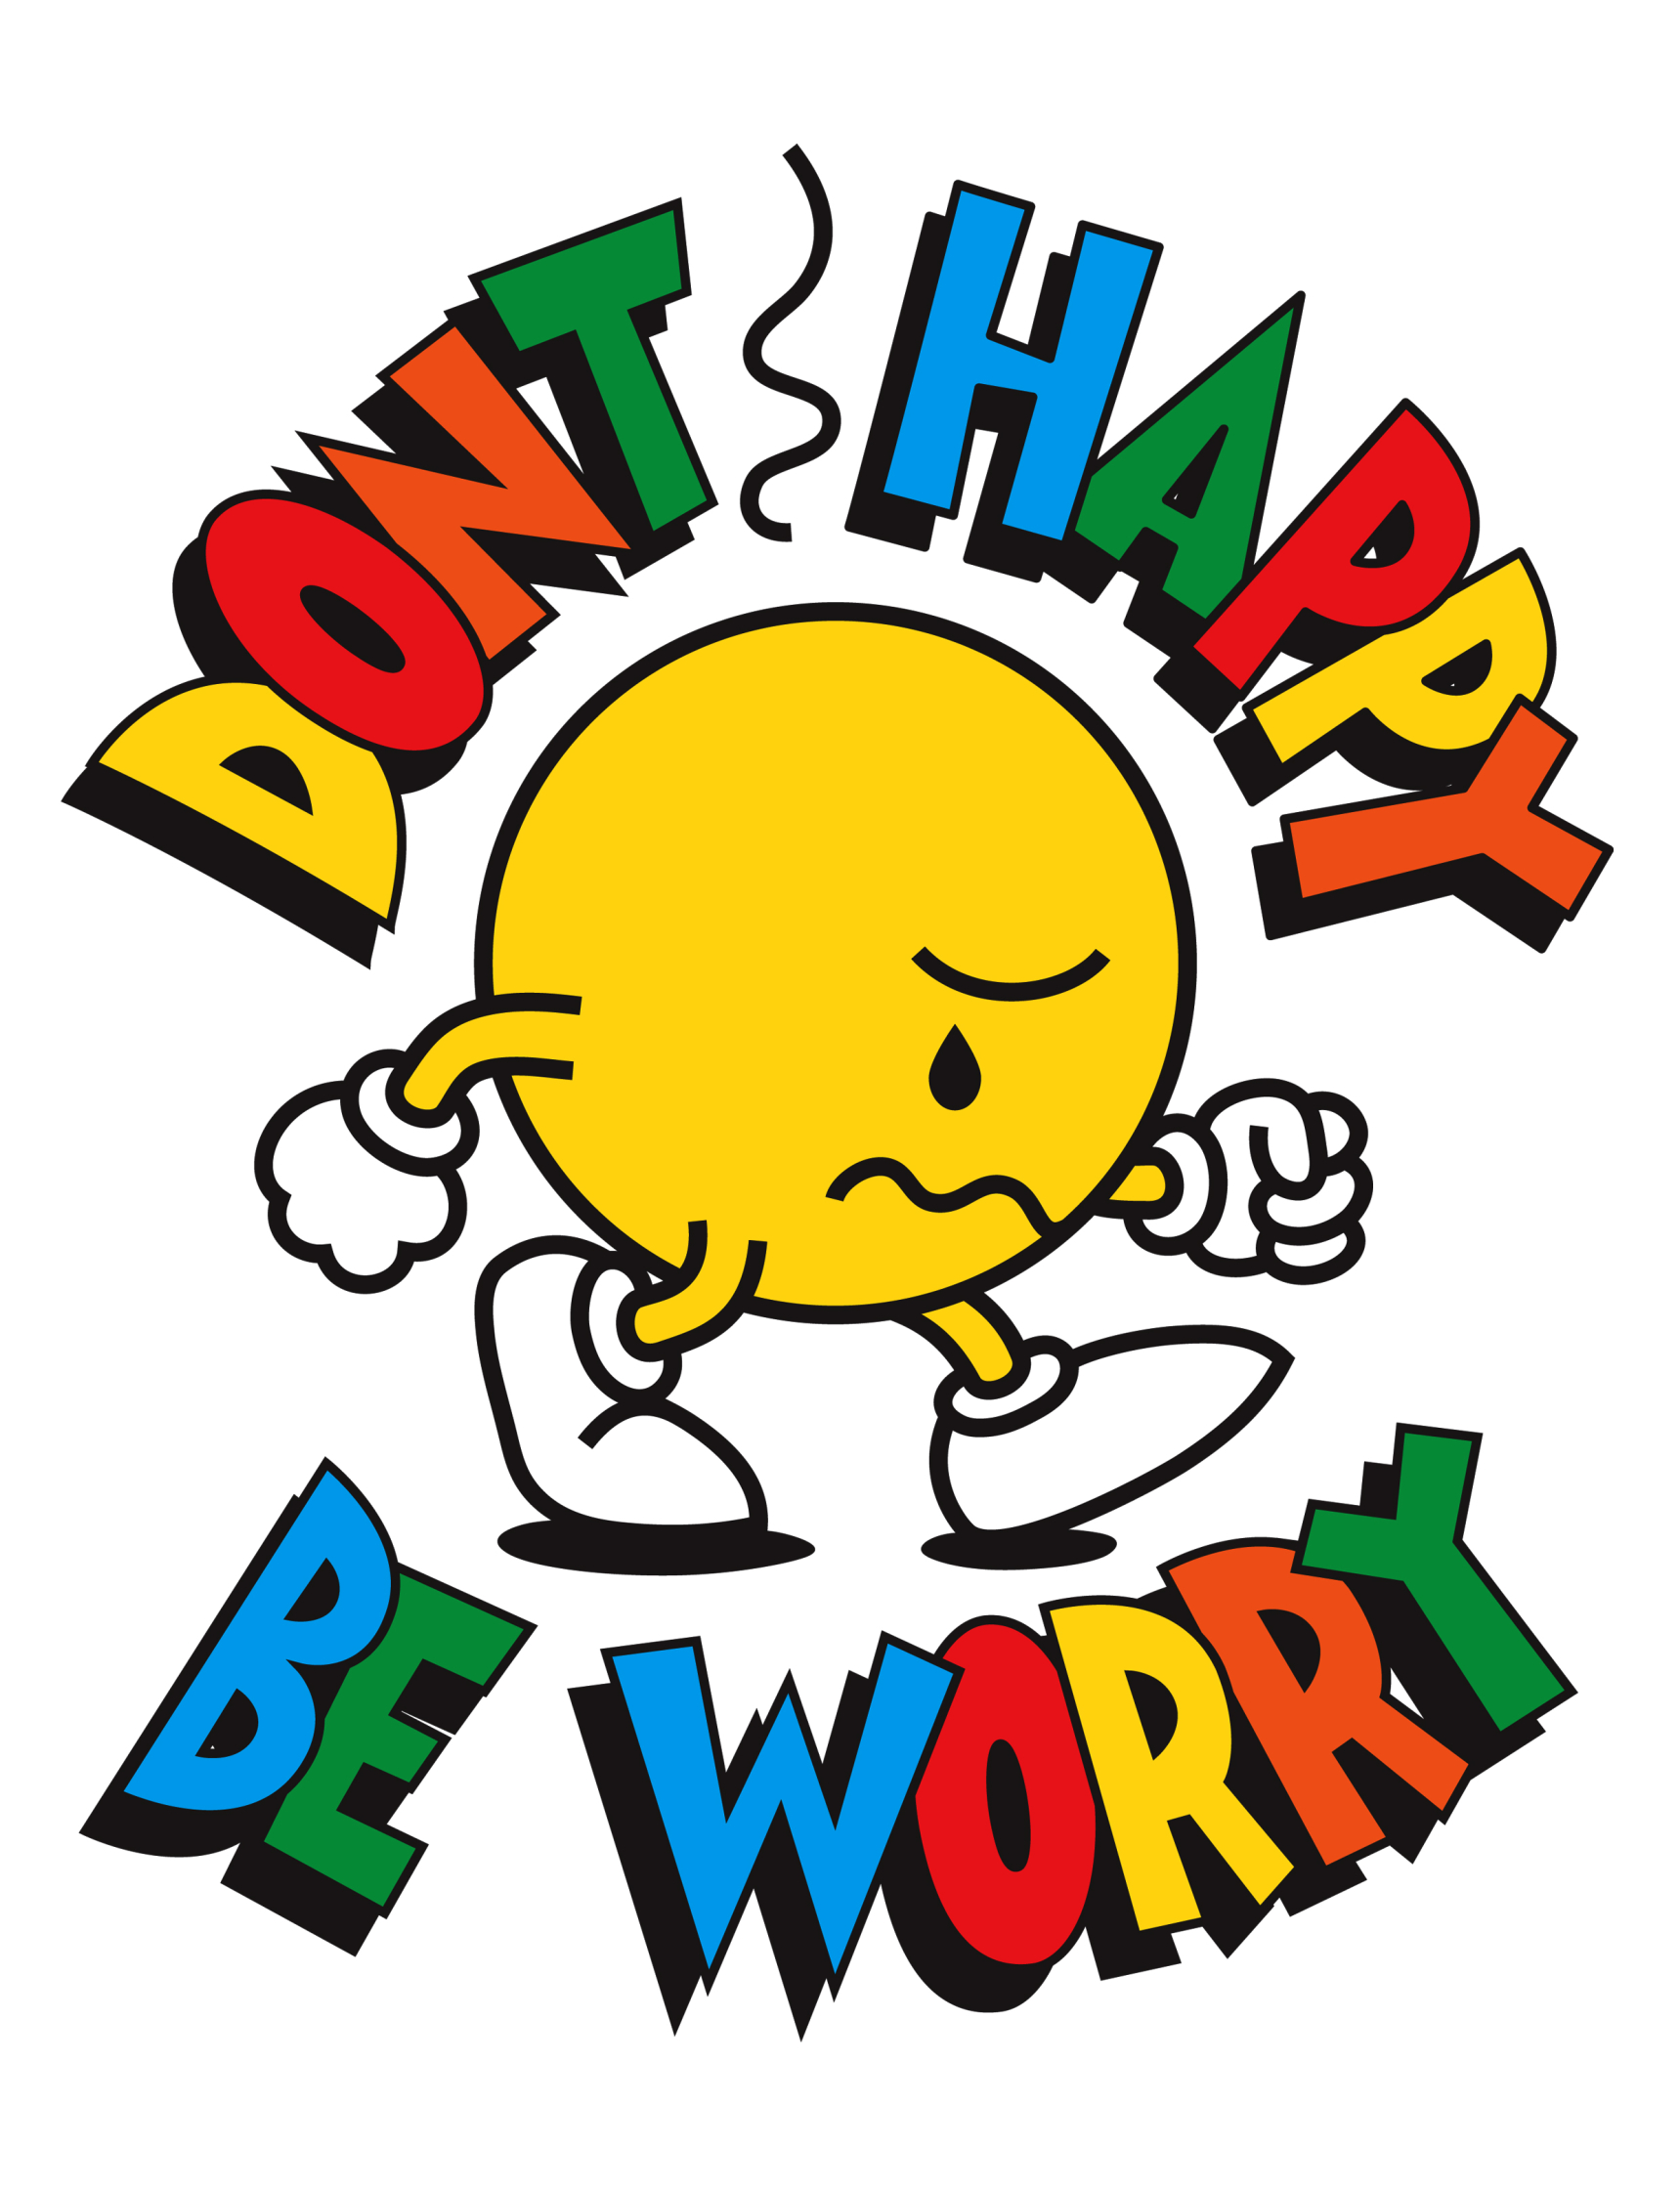 Don't Happy Be Worry